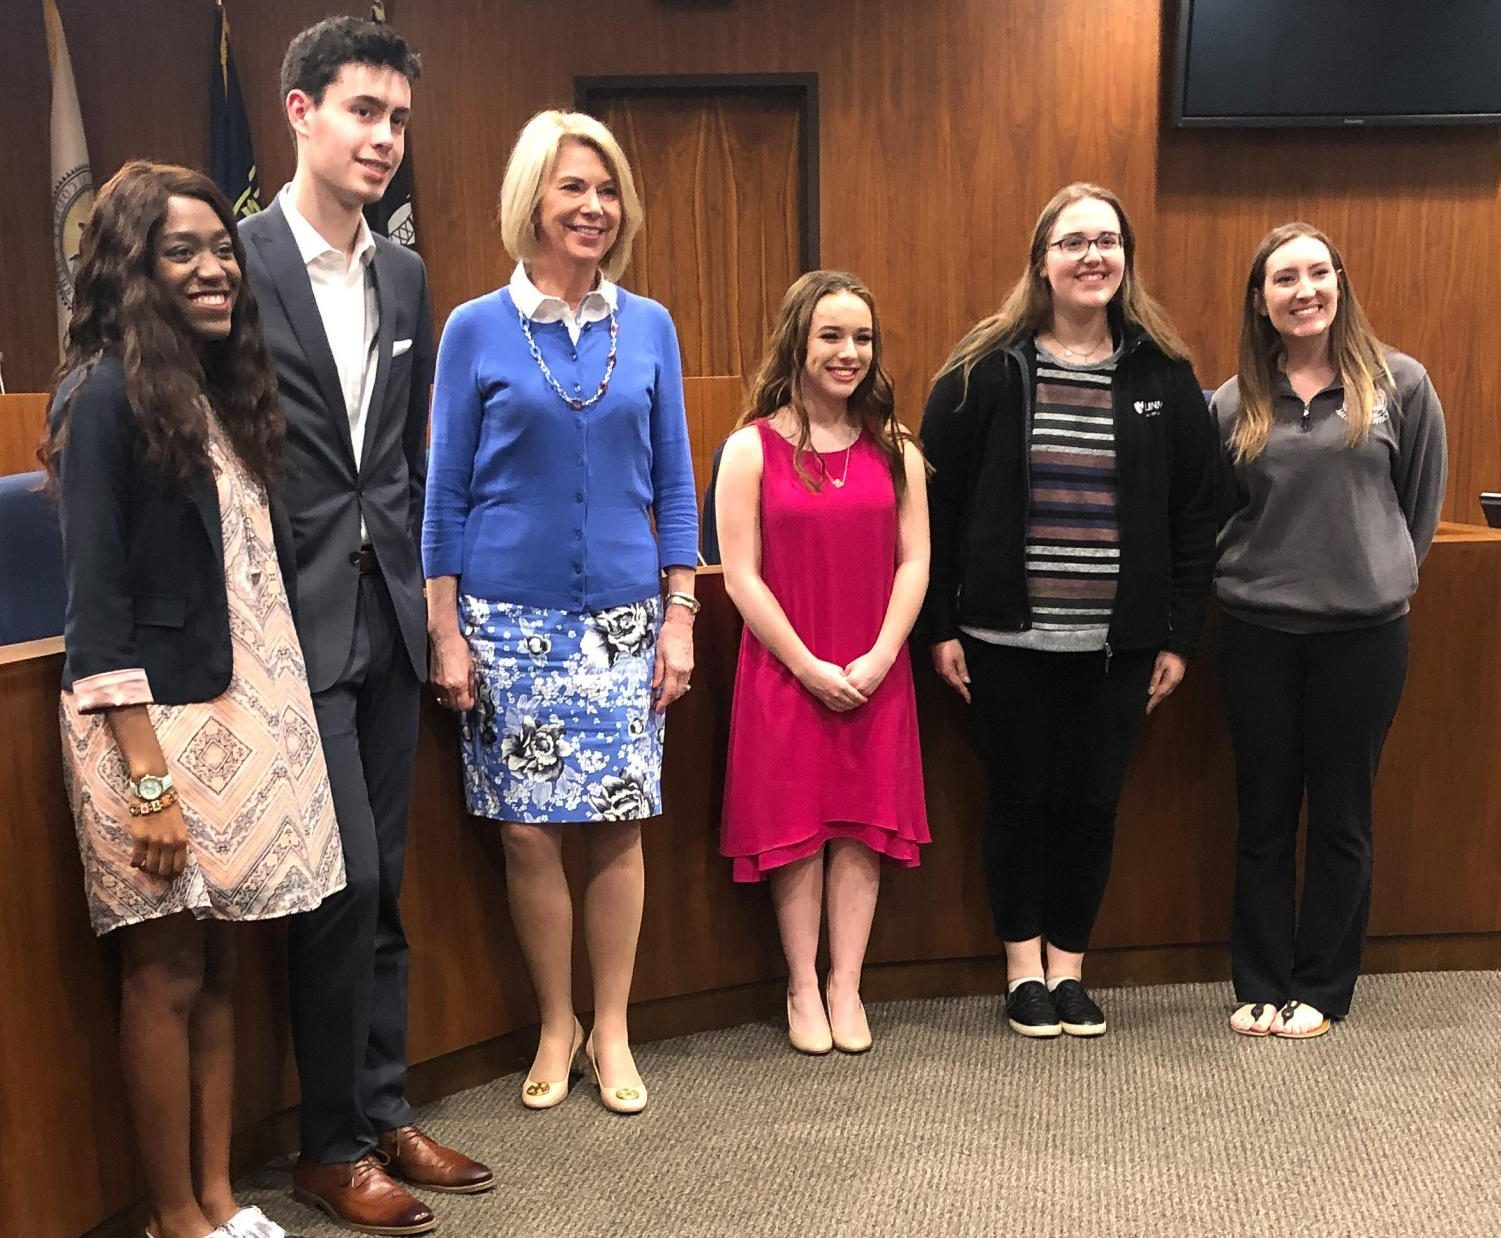 Elkhorn Students Sam Lilly, Ashtyn Tridle, and Katie Swanson stand next to Omaha Mayor Jean Stothert and the mayor's facilitators Kelsey Dolinsky and Terri Armstrong. Dolinsky and Armstrong led the Mayor's group throughout the year.